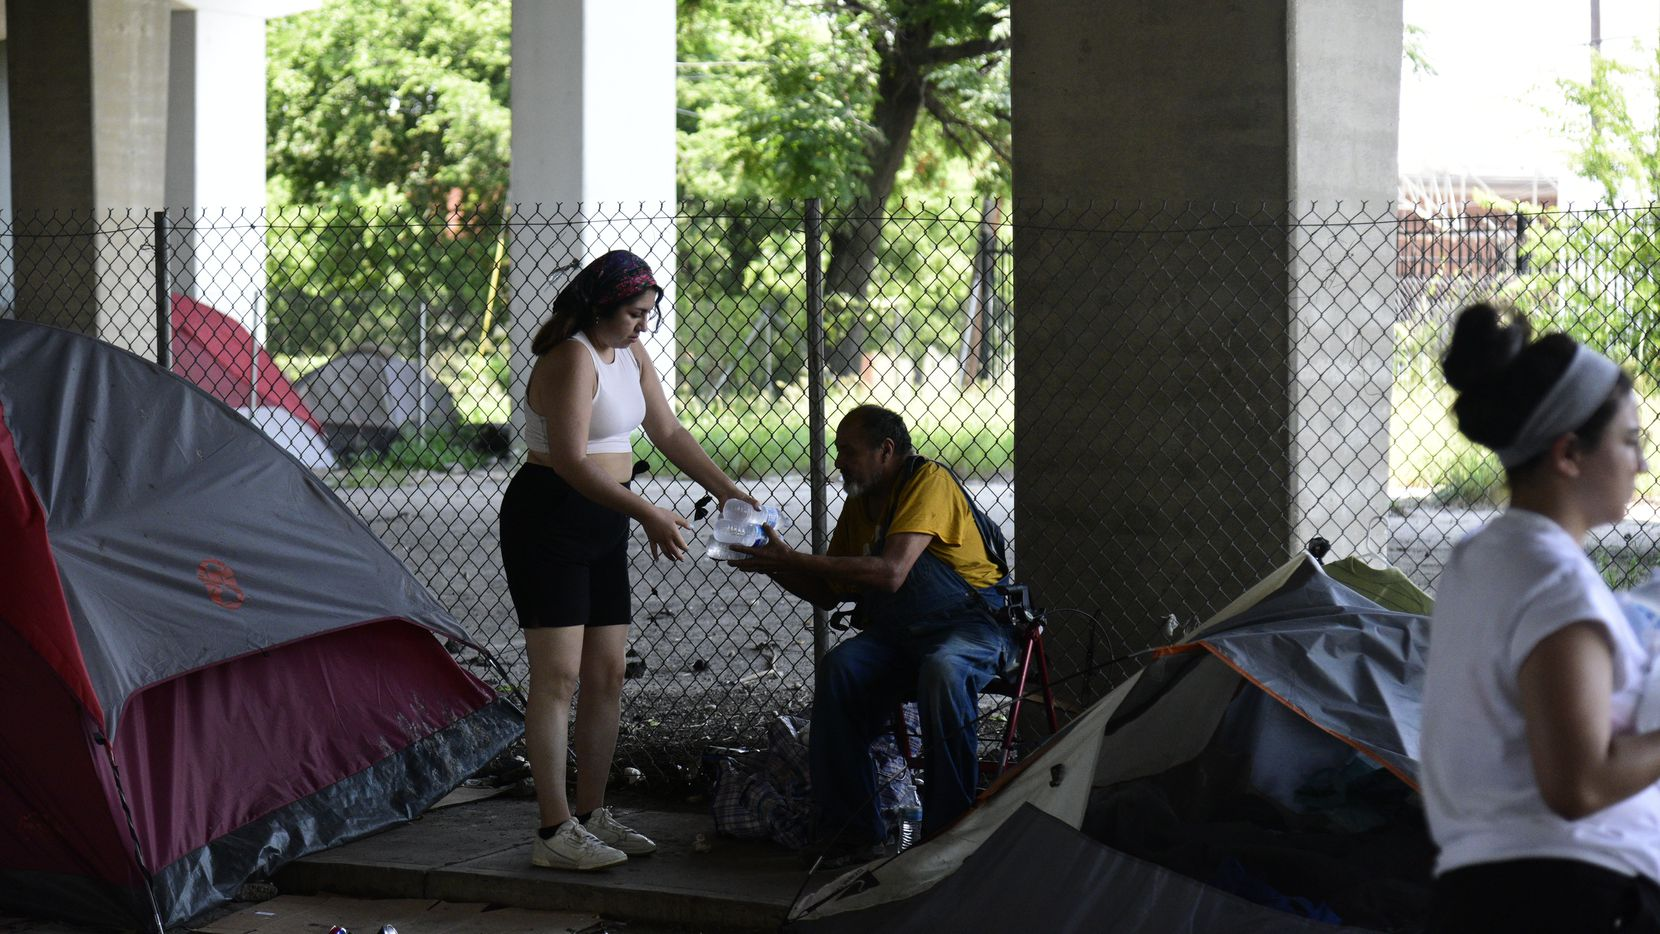 Volunteer Olivia Najera-Garcia hands out bottled water in under-freeway encampments for Feed the People Dallas on June 18, 2021.